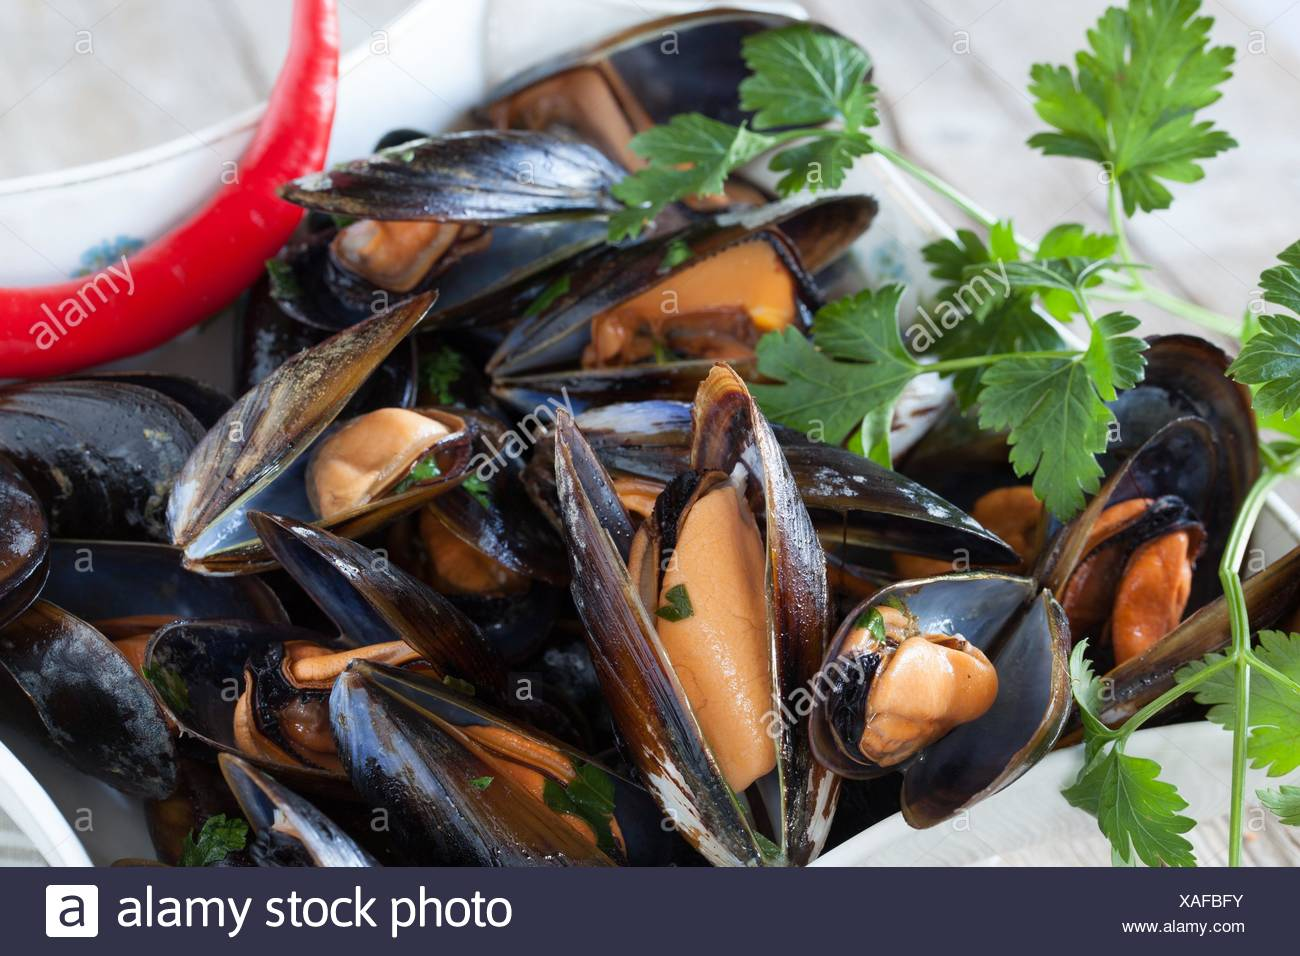 Closeup of bowl with mussels saute decorated with fresh parsley and red chili pepper. Stock Photo